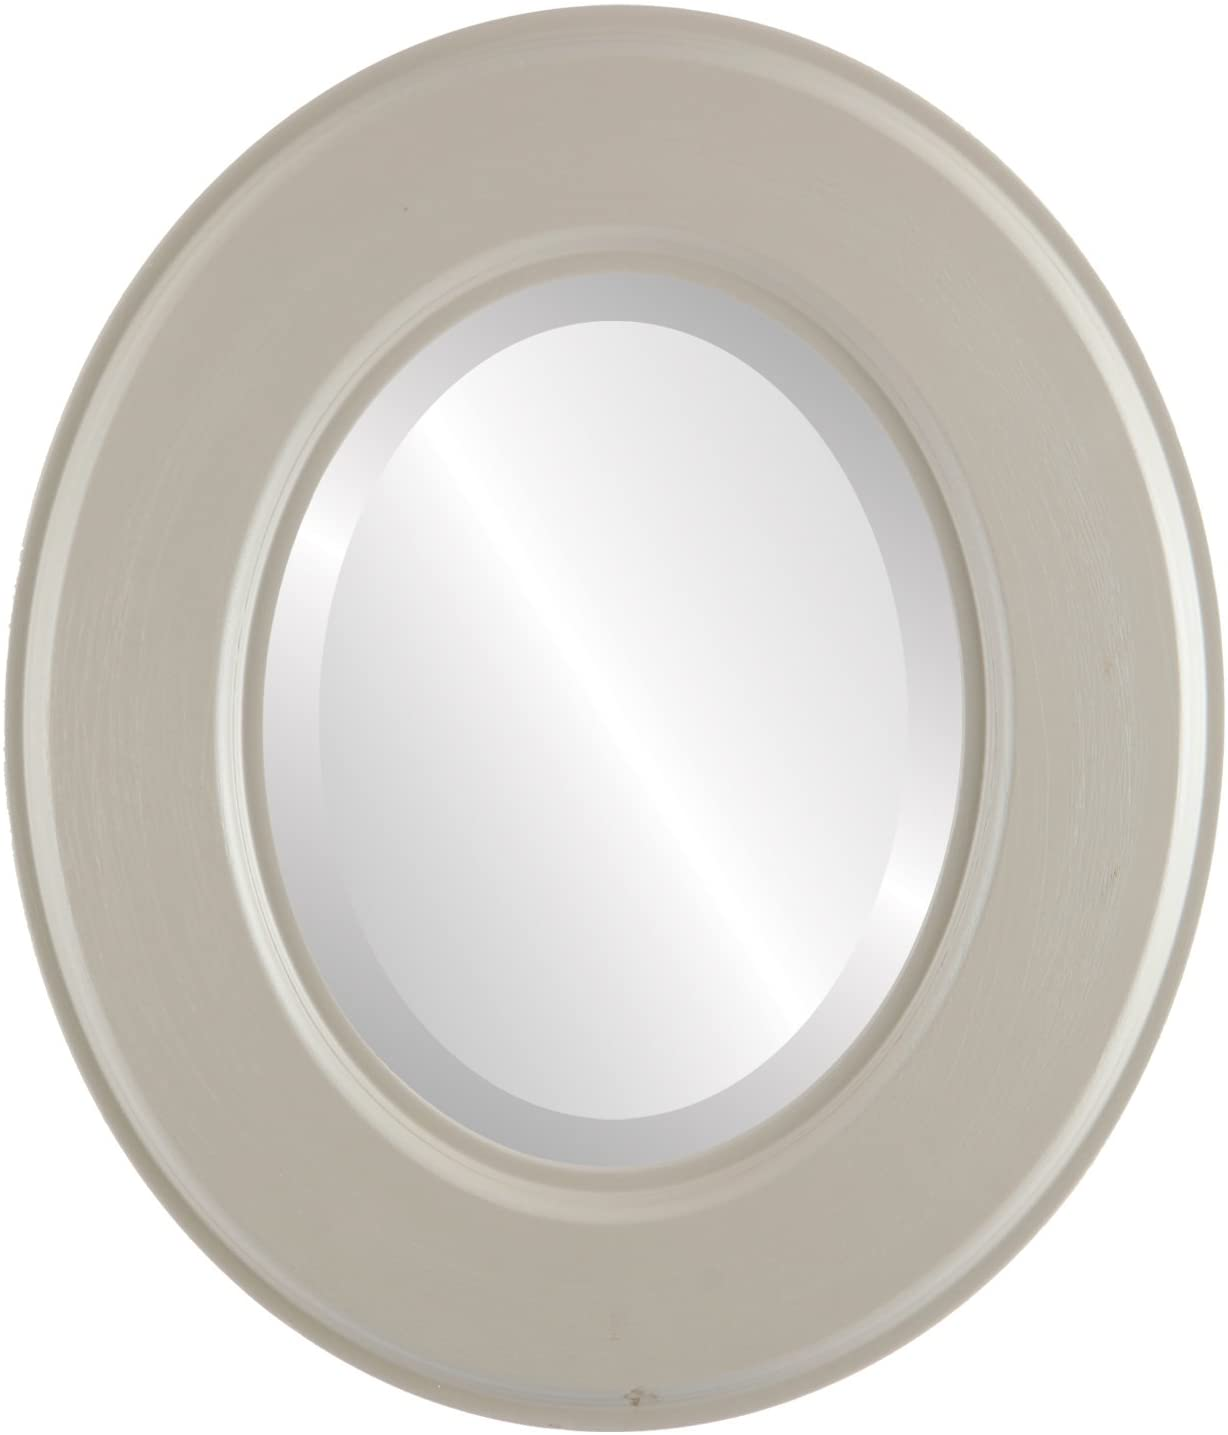 Oval Beveled Wall Mirror for Home Decor - Marquis Style - Indian River - 28x32 Outside Dimensions